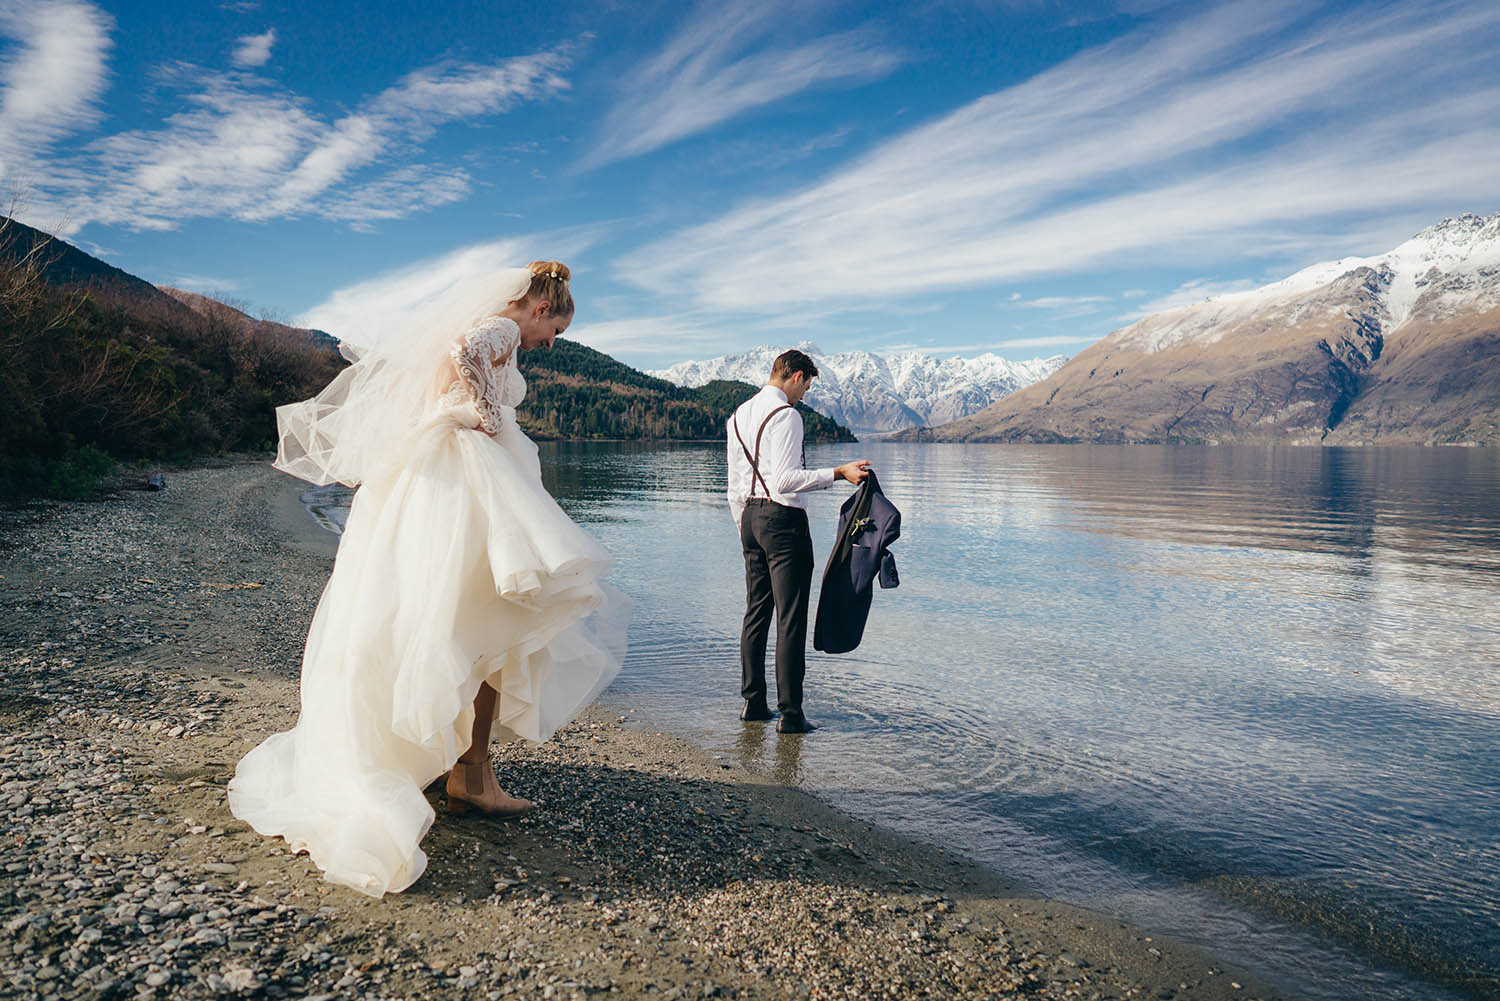 Lake Wakatipu winter wedding, Lakeside wedding ceremony, 12 mile delta Queenstown